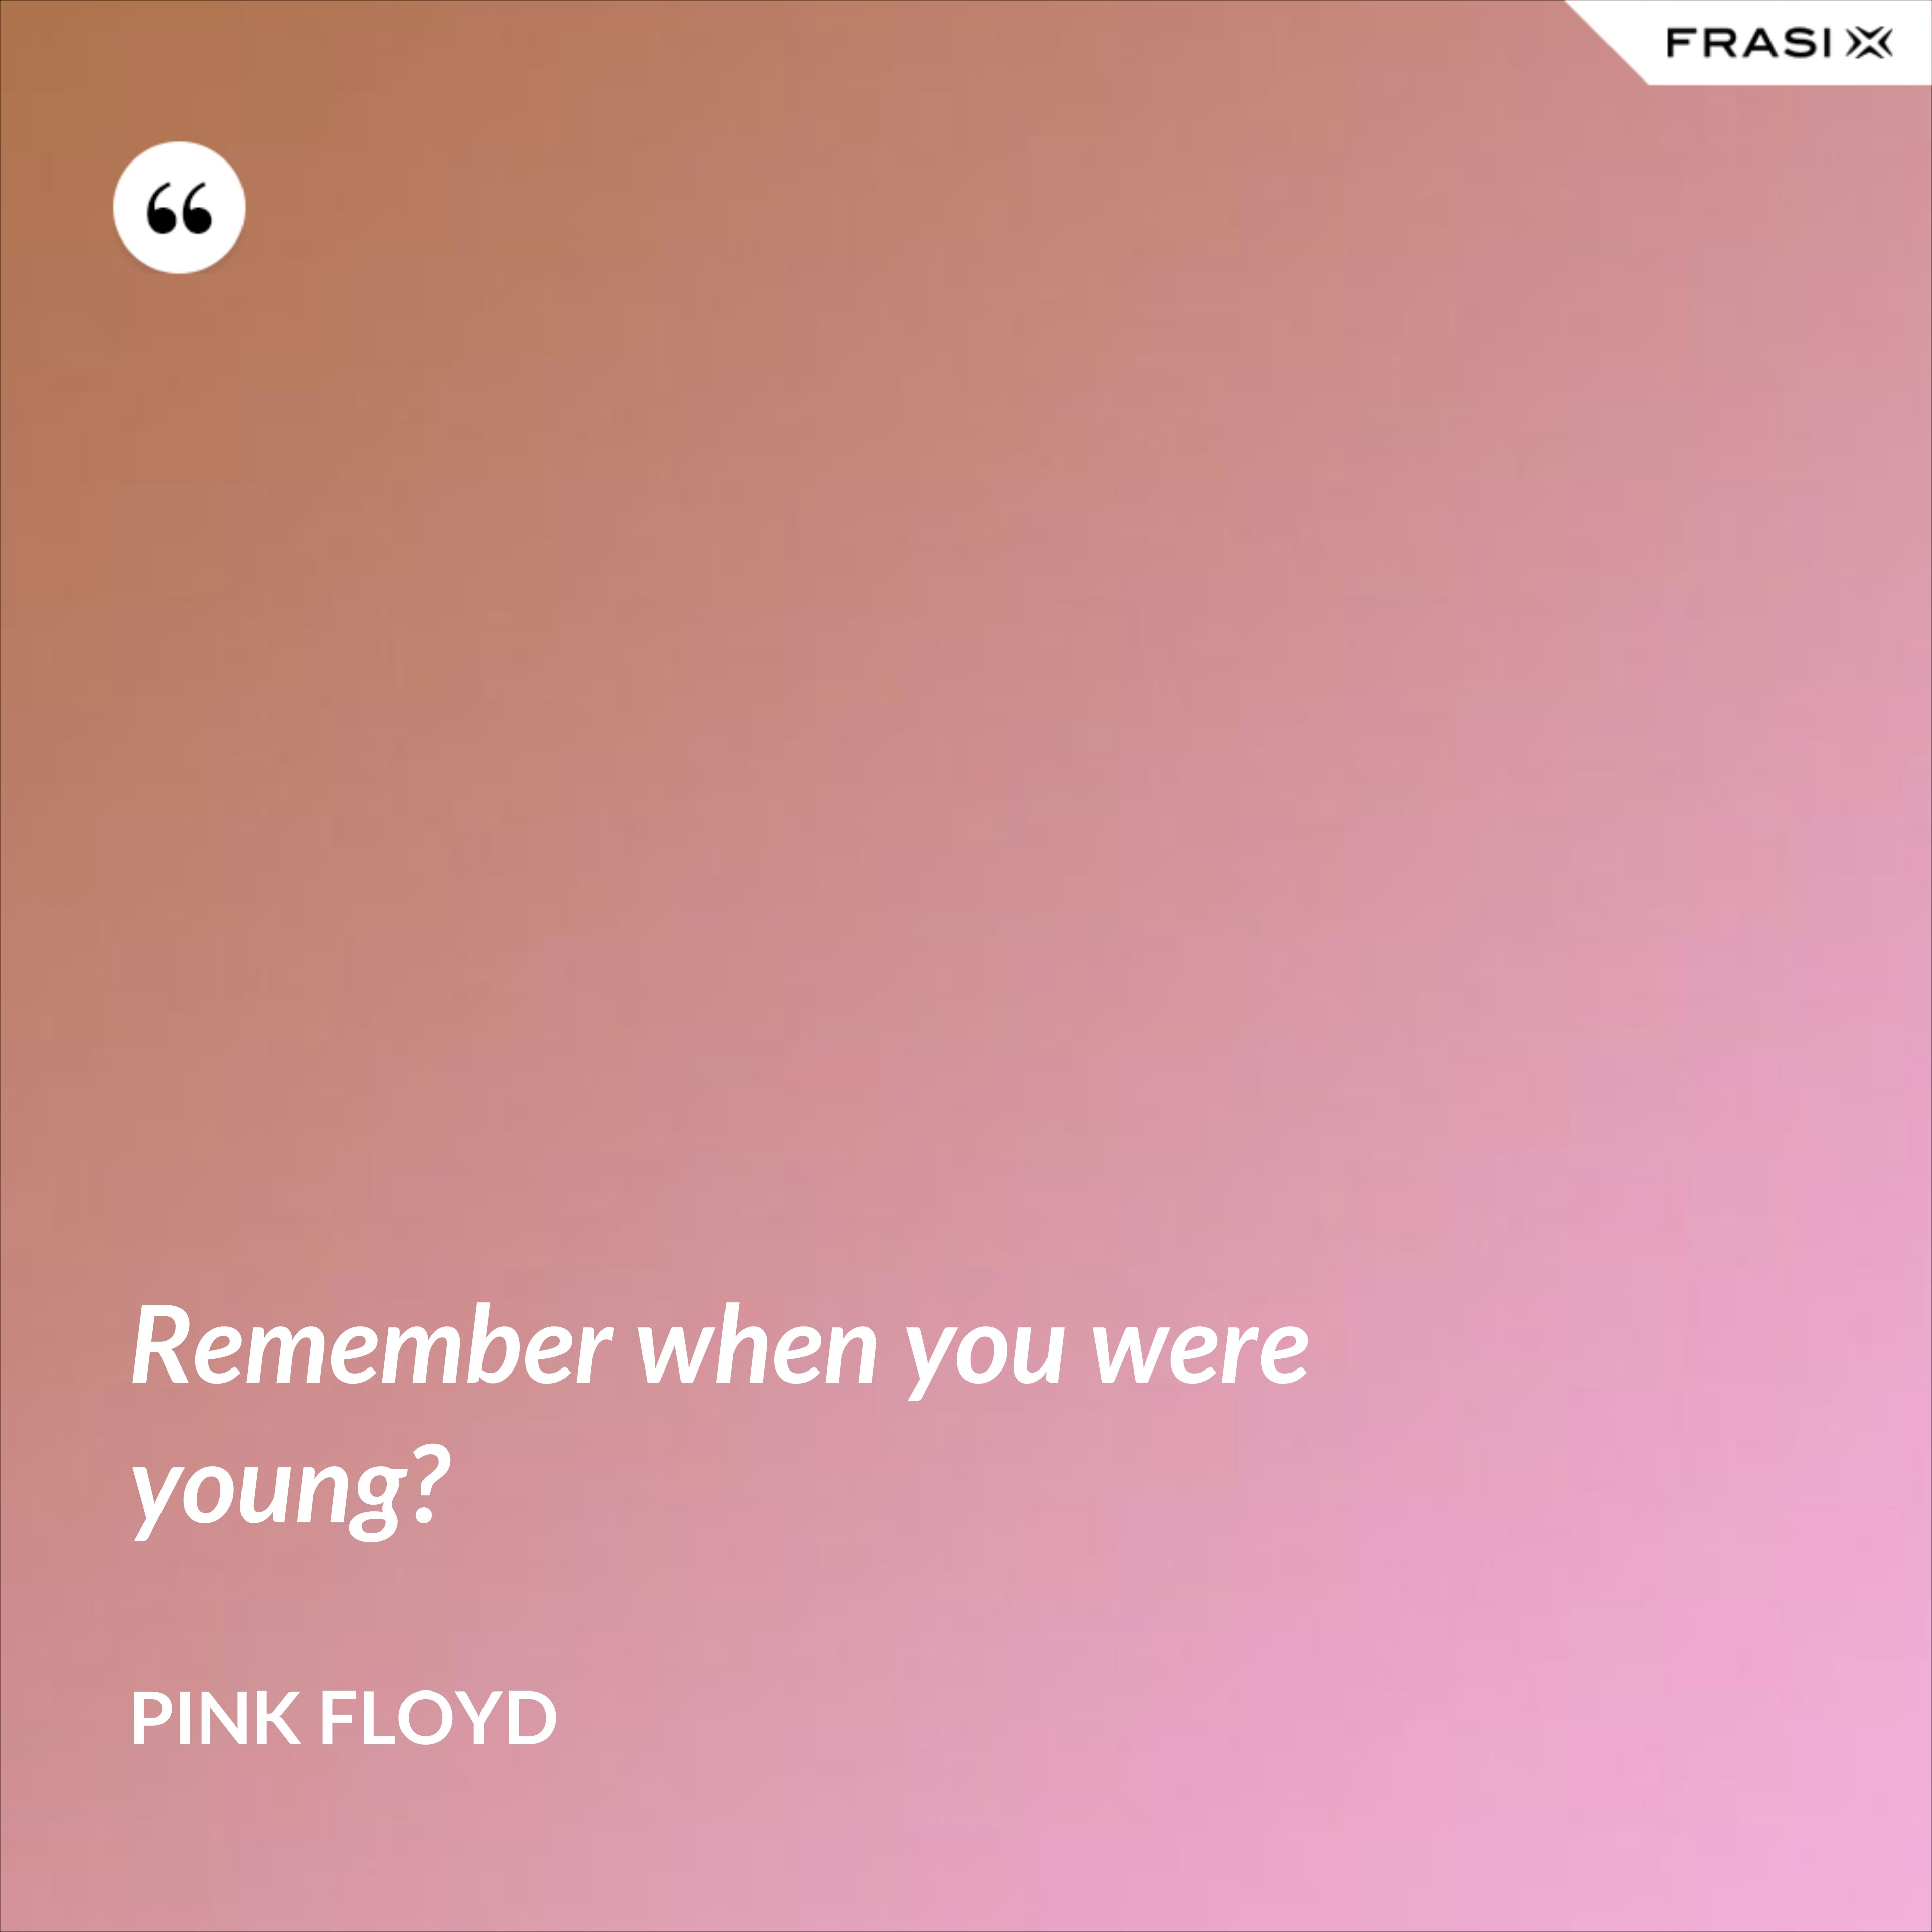 Remember when you were young? - Pink Floyd